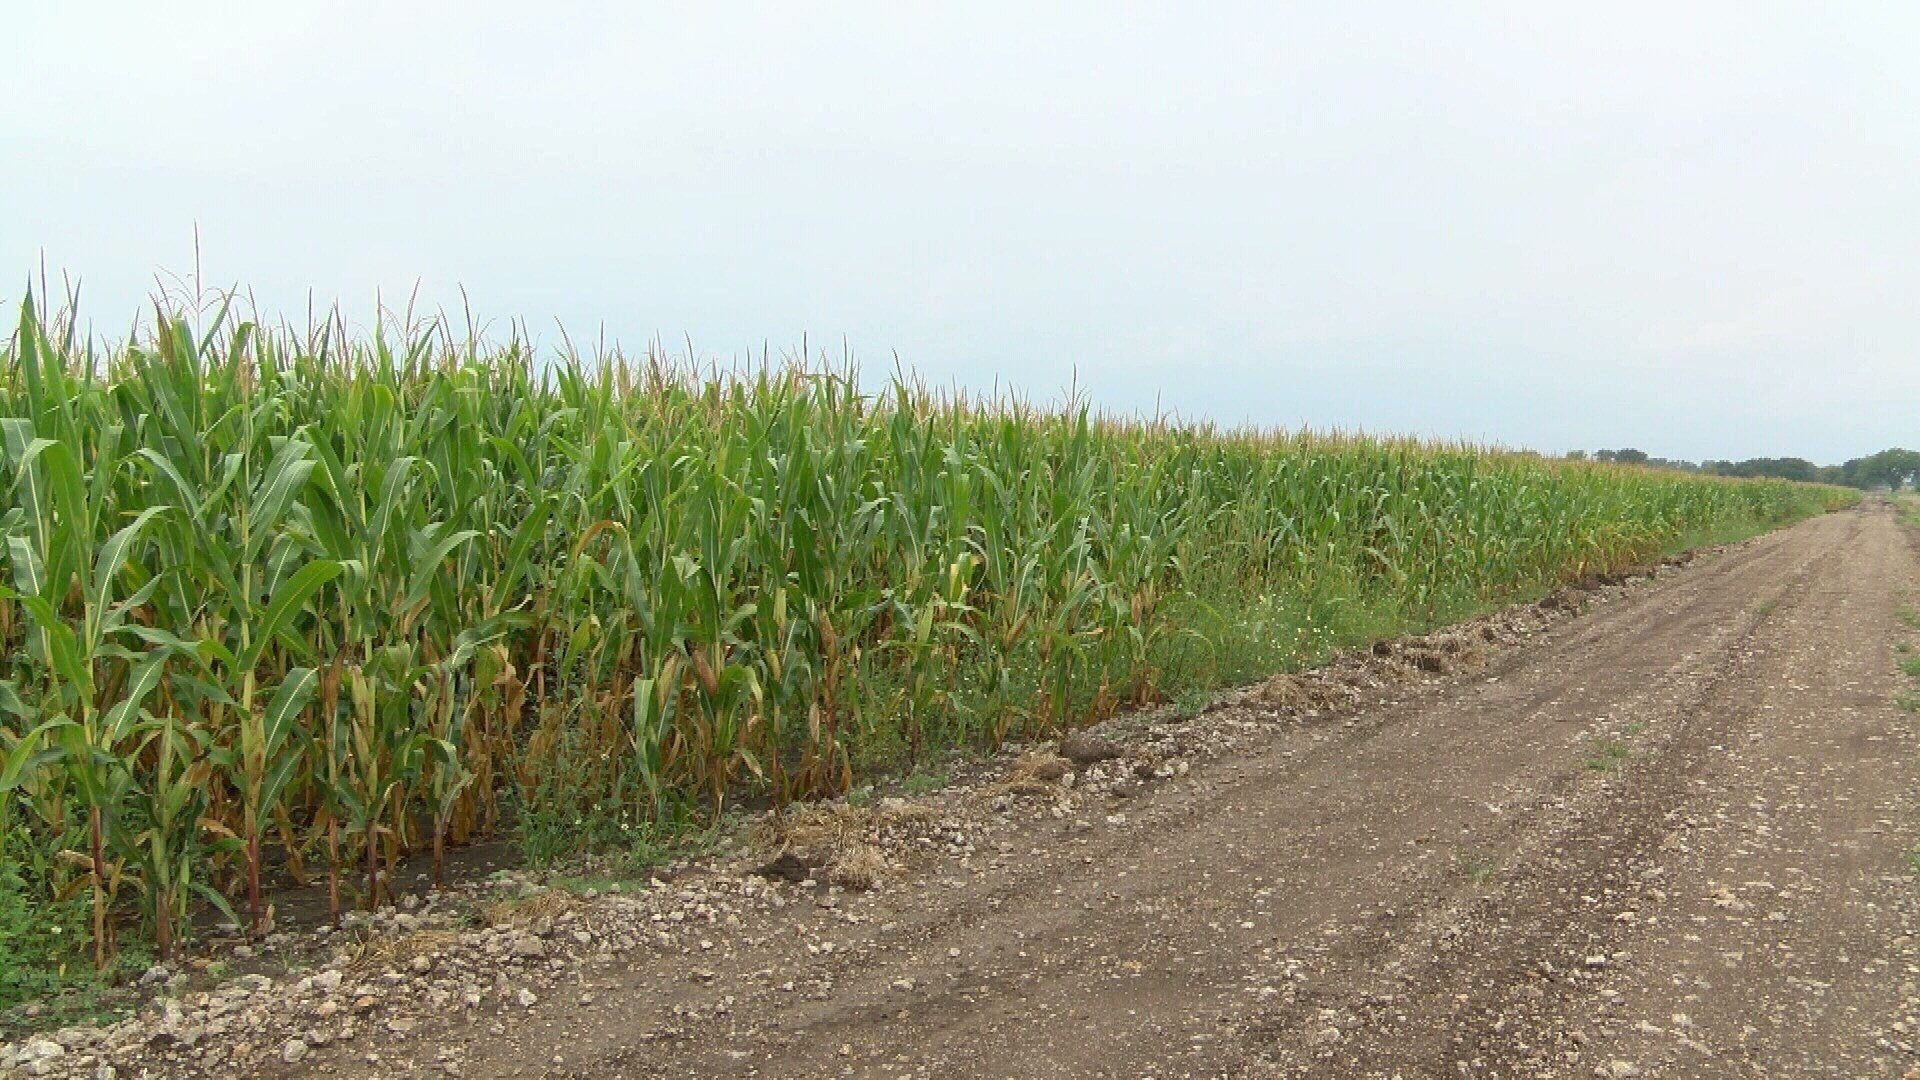 Corn field where Bender home and bodies were located